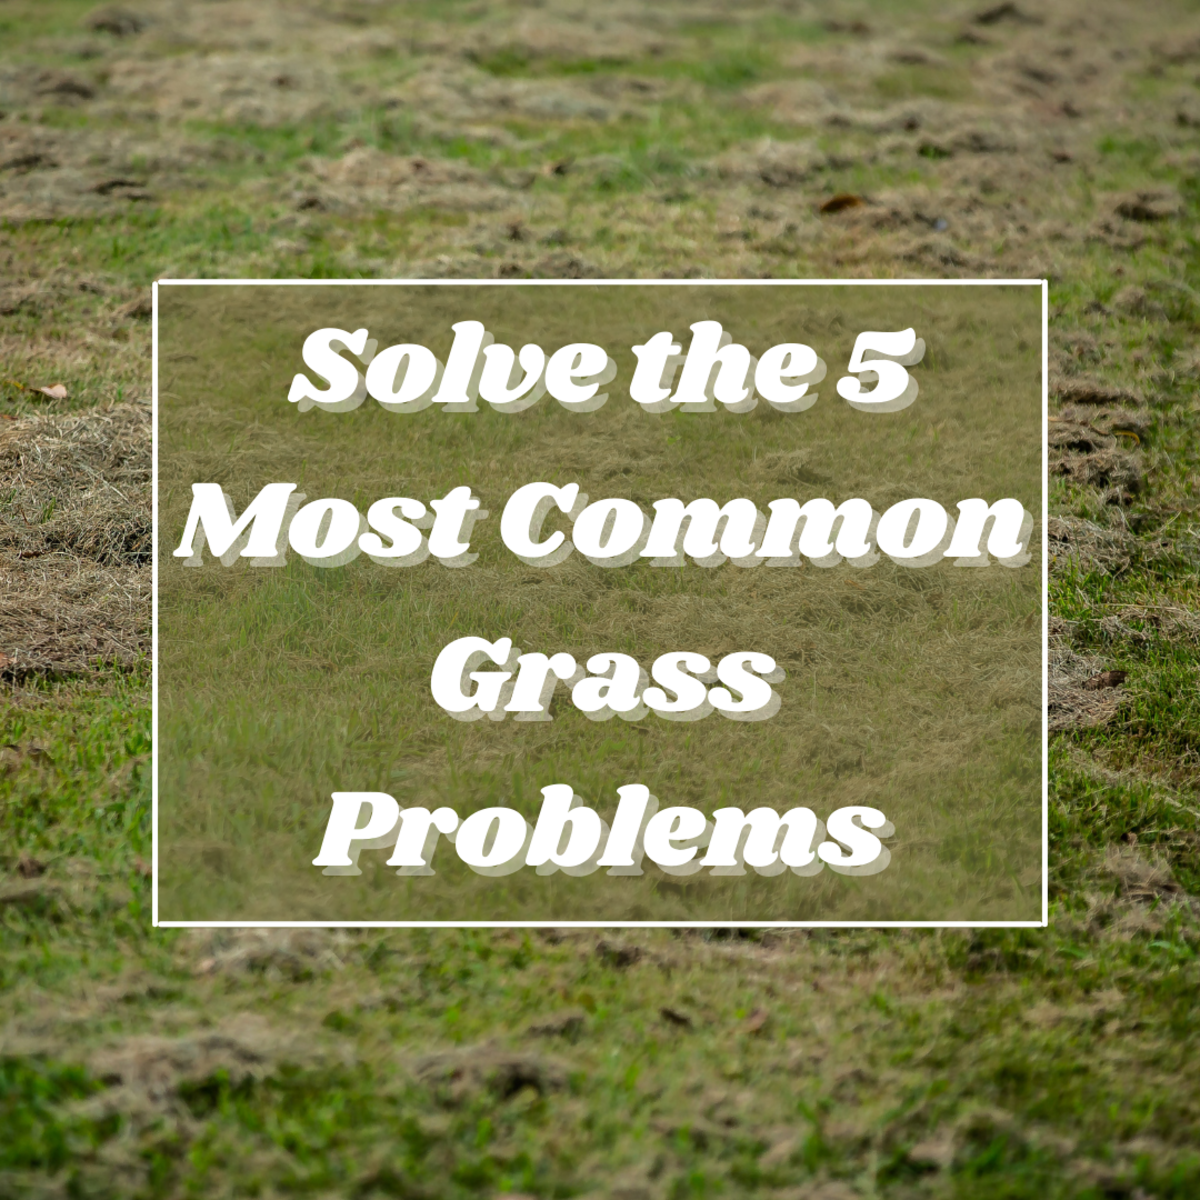 Learn about the 5 most common issues people have with their grass, and find out how to revive your fading lawn